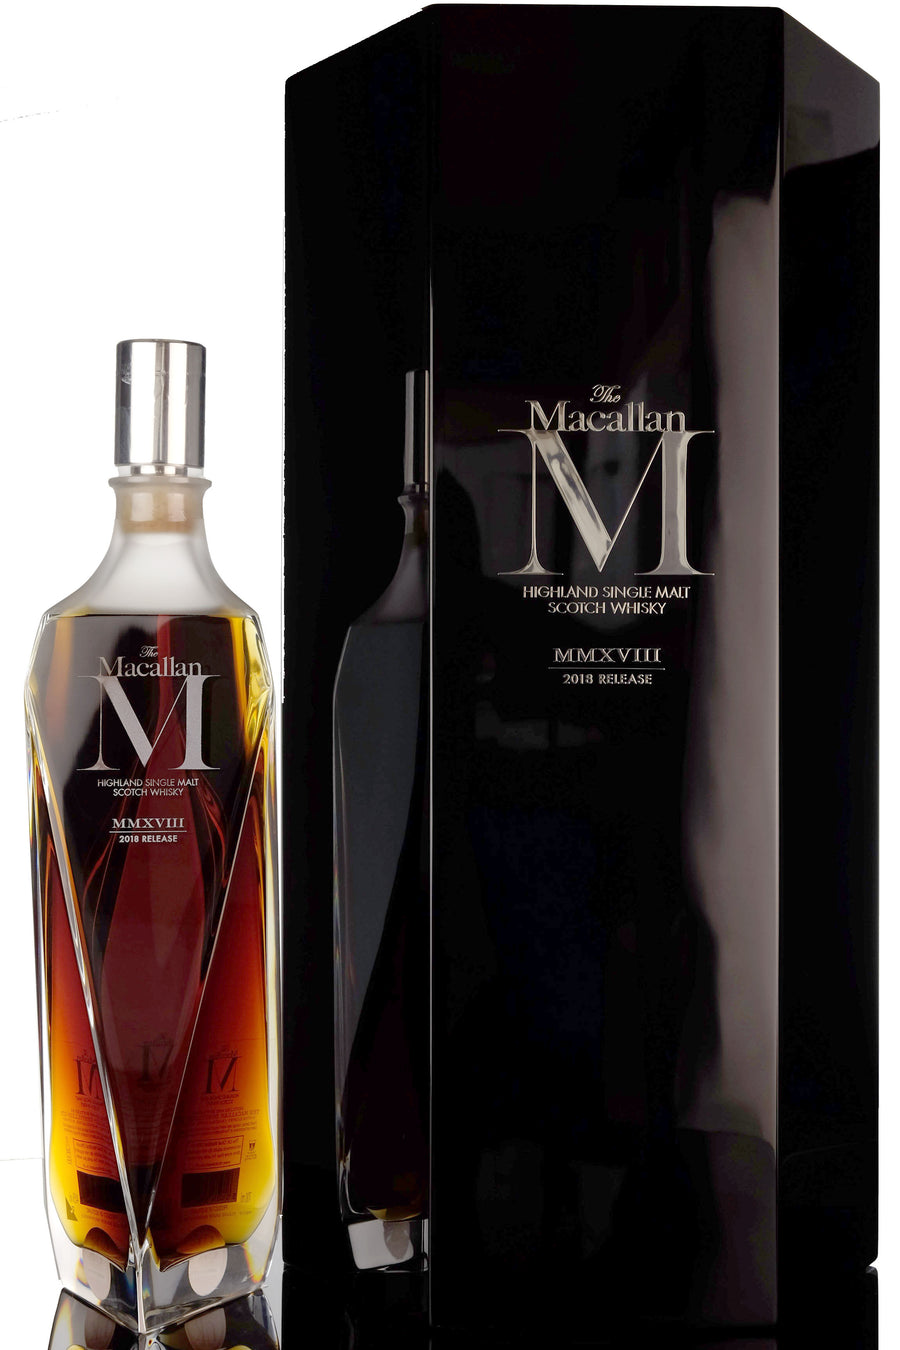 The Macallan Highland Single Malt Scotch Whisky M (2018 Edition) 750ML